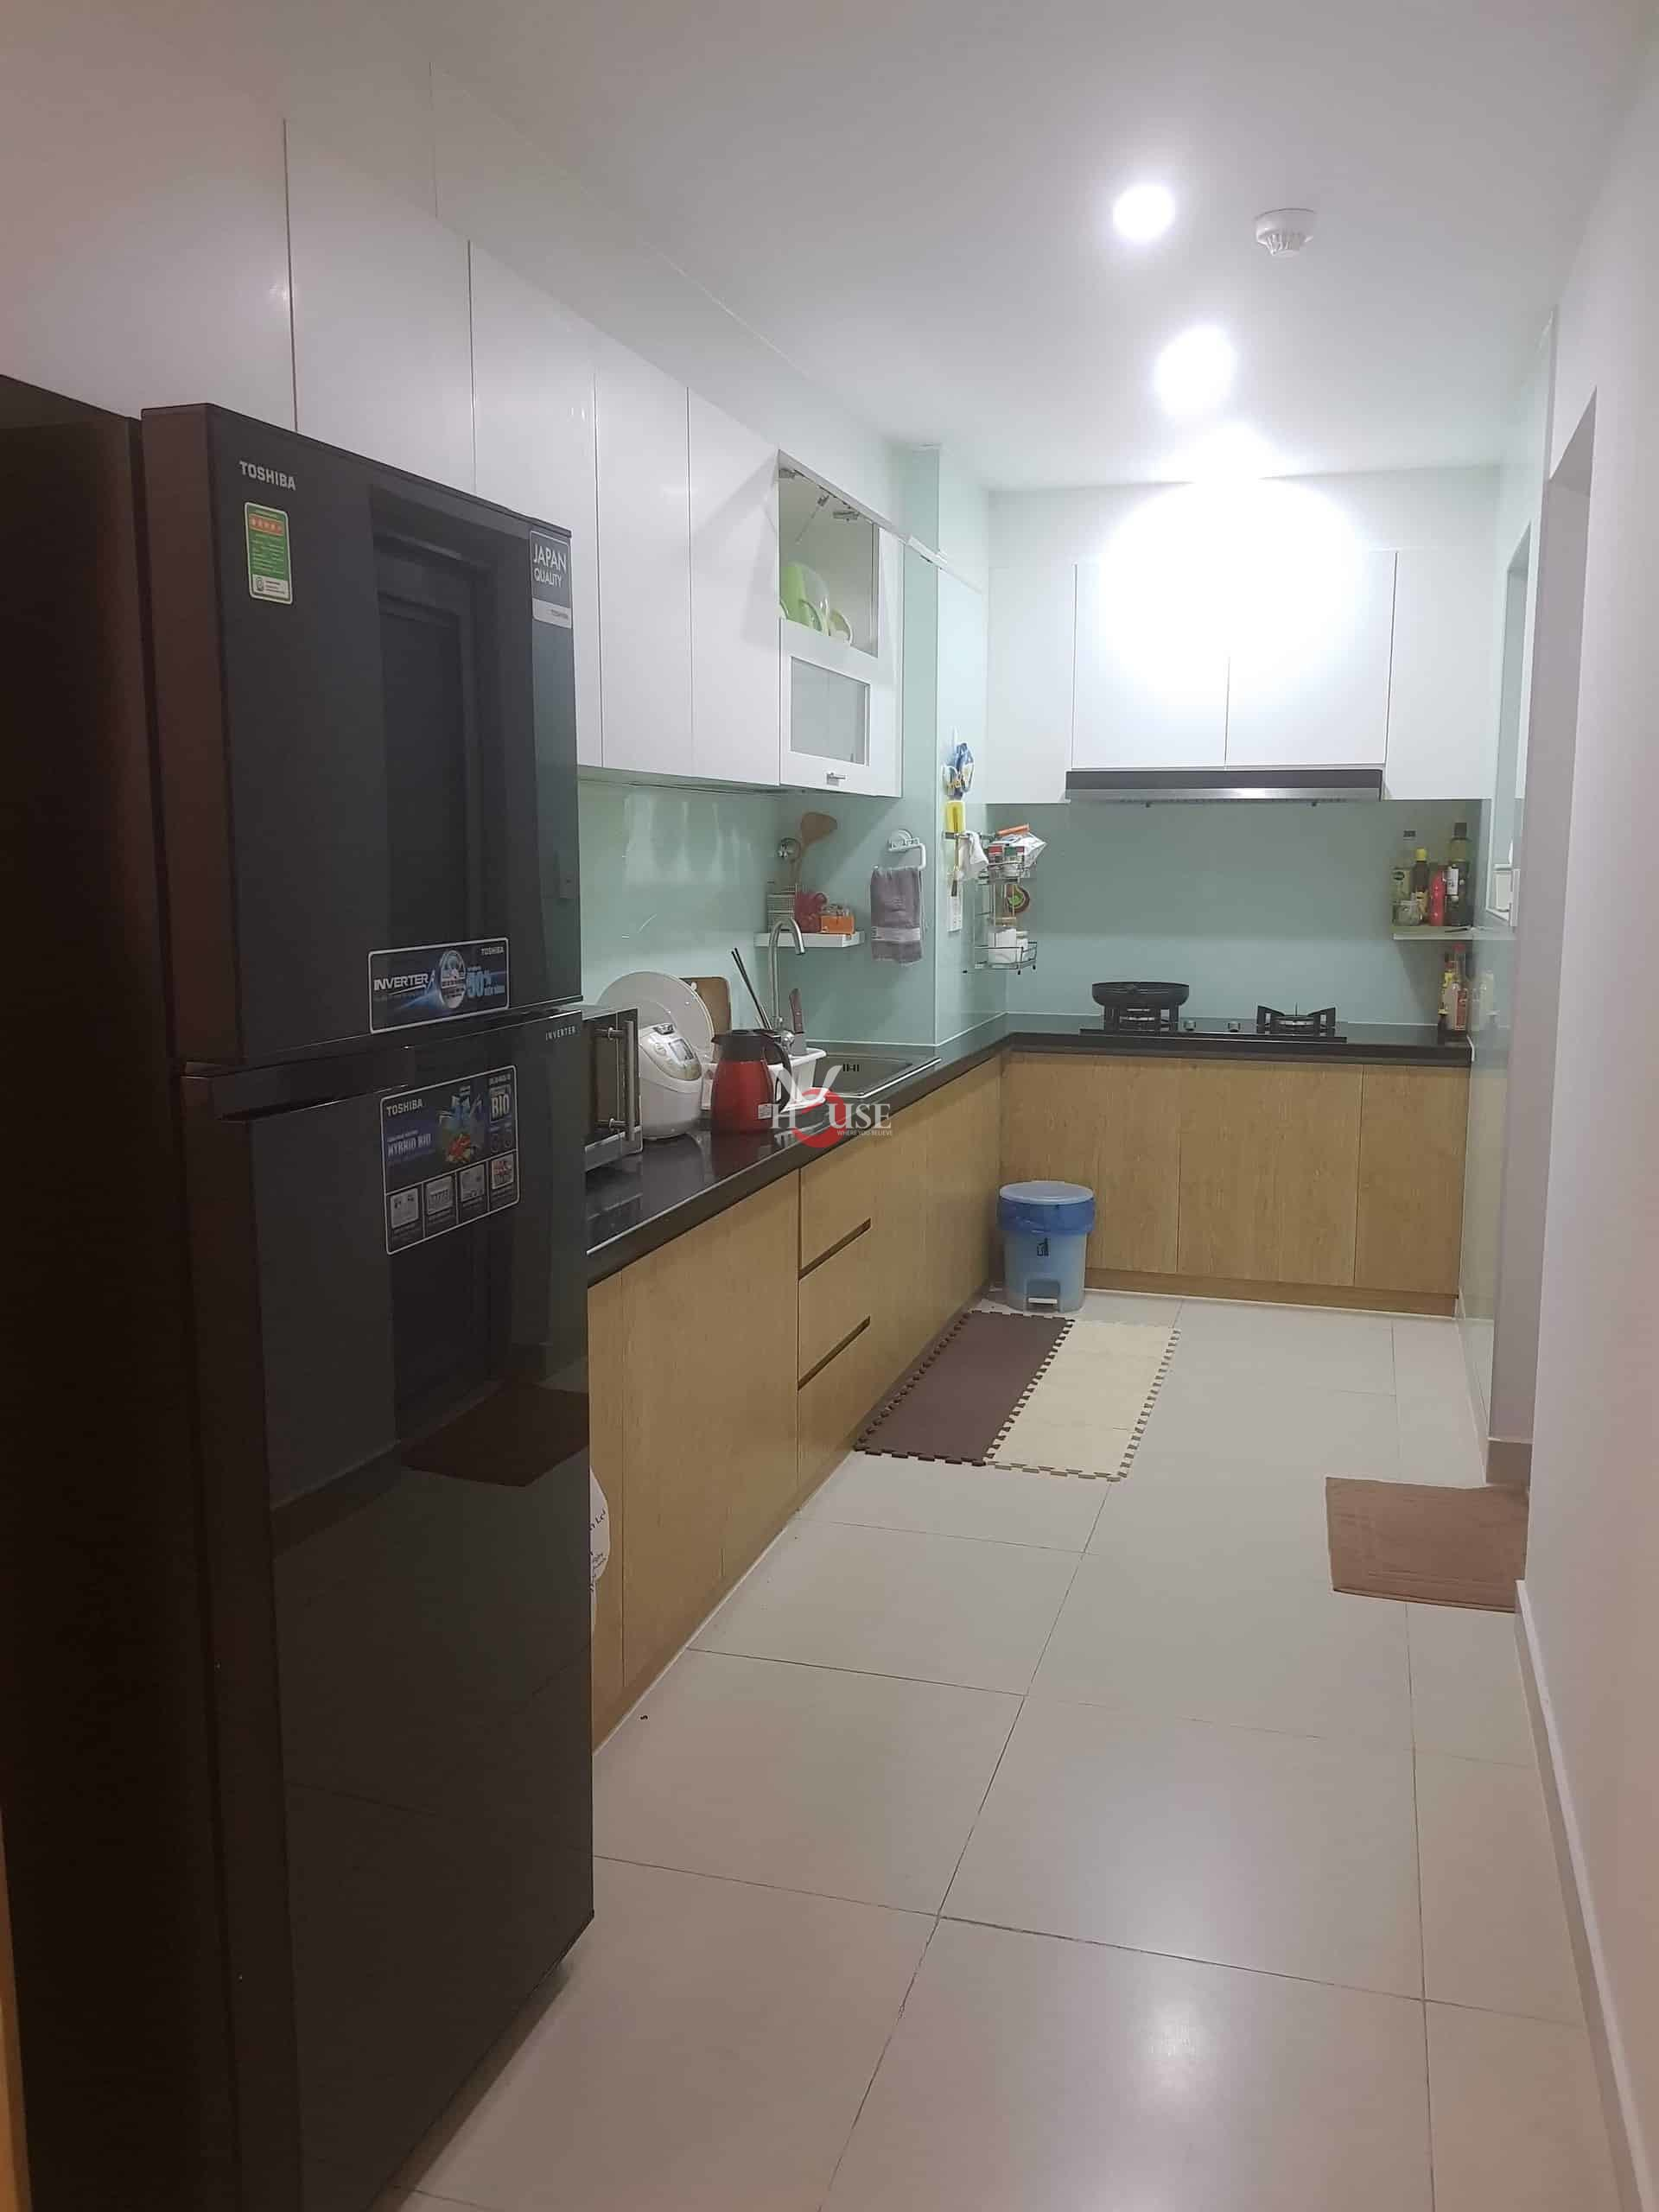 2 Bedrooms At Scenic Valley Apartment For Rent